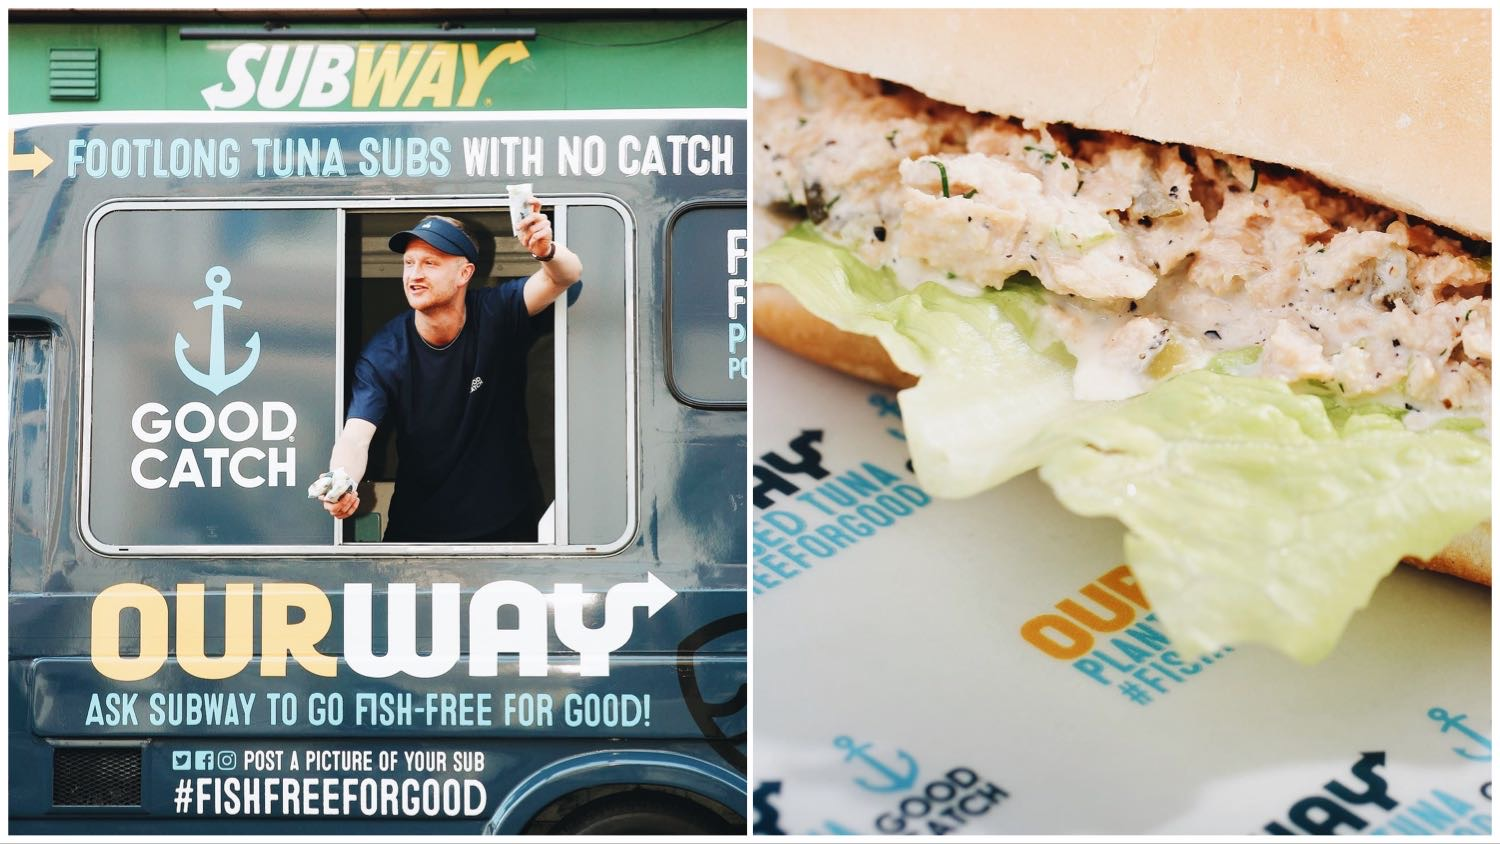 Split image of an employee leaning out of the GoodCatch van outside of Subway (left), and the vegan tuna sandwich itself (right).